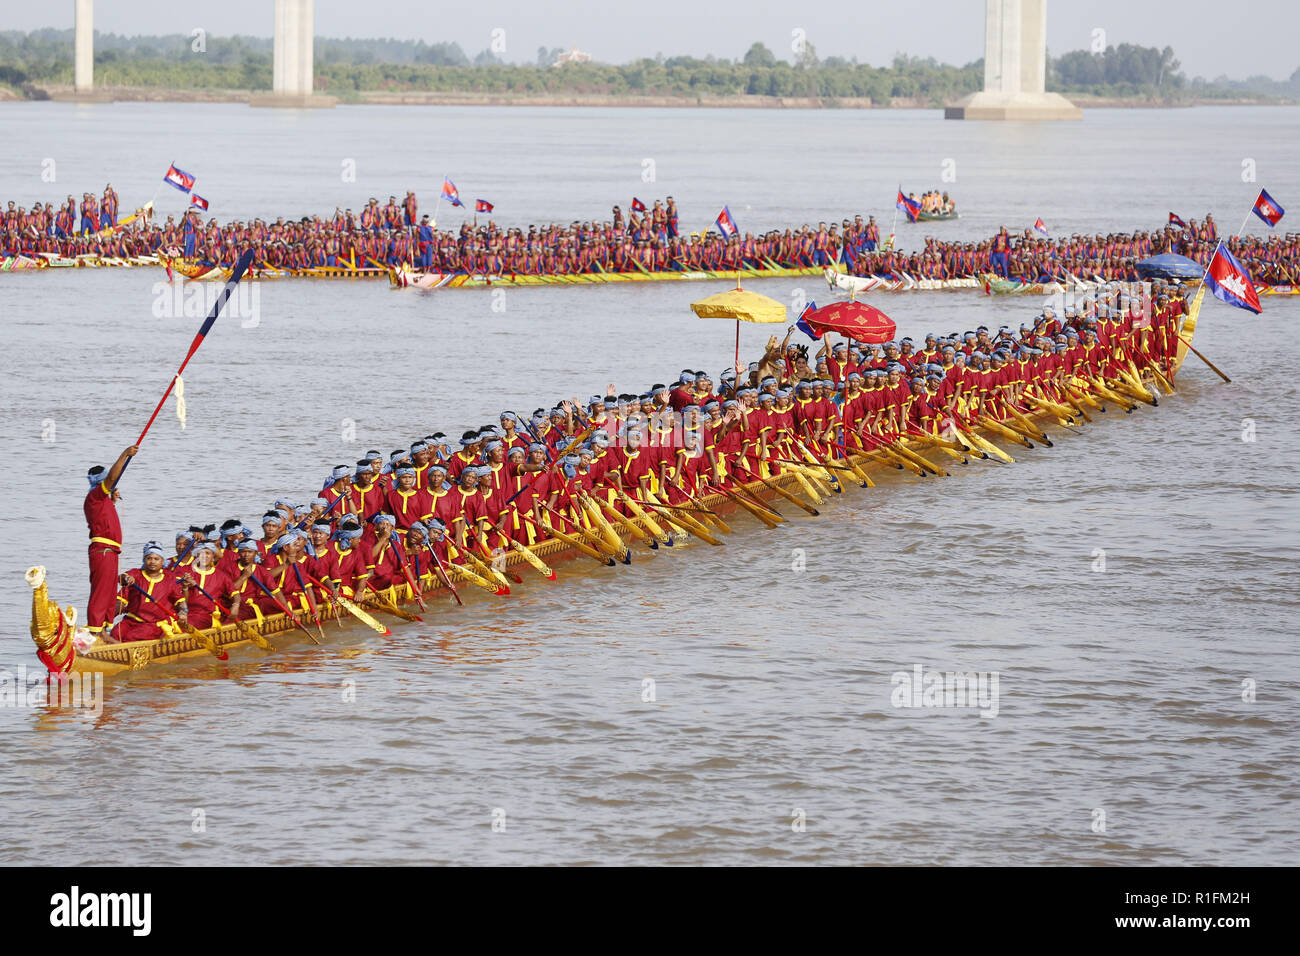 Prey Veng. 12th Nov, 2018. Photo taken on Nov. 12, 2018 shows oarsmen rowing the world's longest dragon boat (front) on the Mekong river in Prey Veng province, Cambodia. Cambodia's 87.3-meter-long wooden boat was recorded in the Guinness Book of Records as the world's longest dragon boat on Monday, breaking the previous record held by China. Credit: Sovannara/Xinhua/Alamy Live News - Stock Image